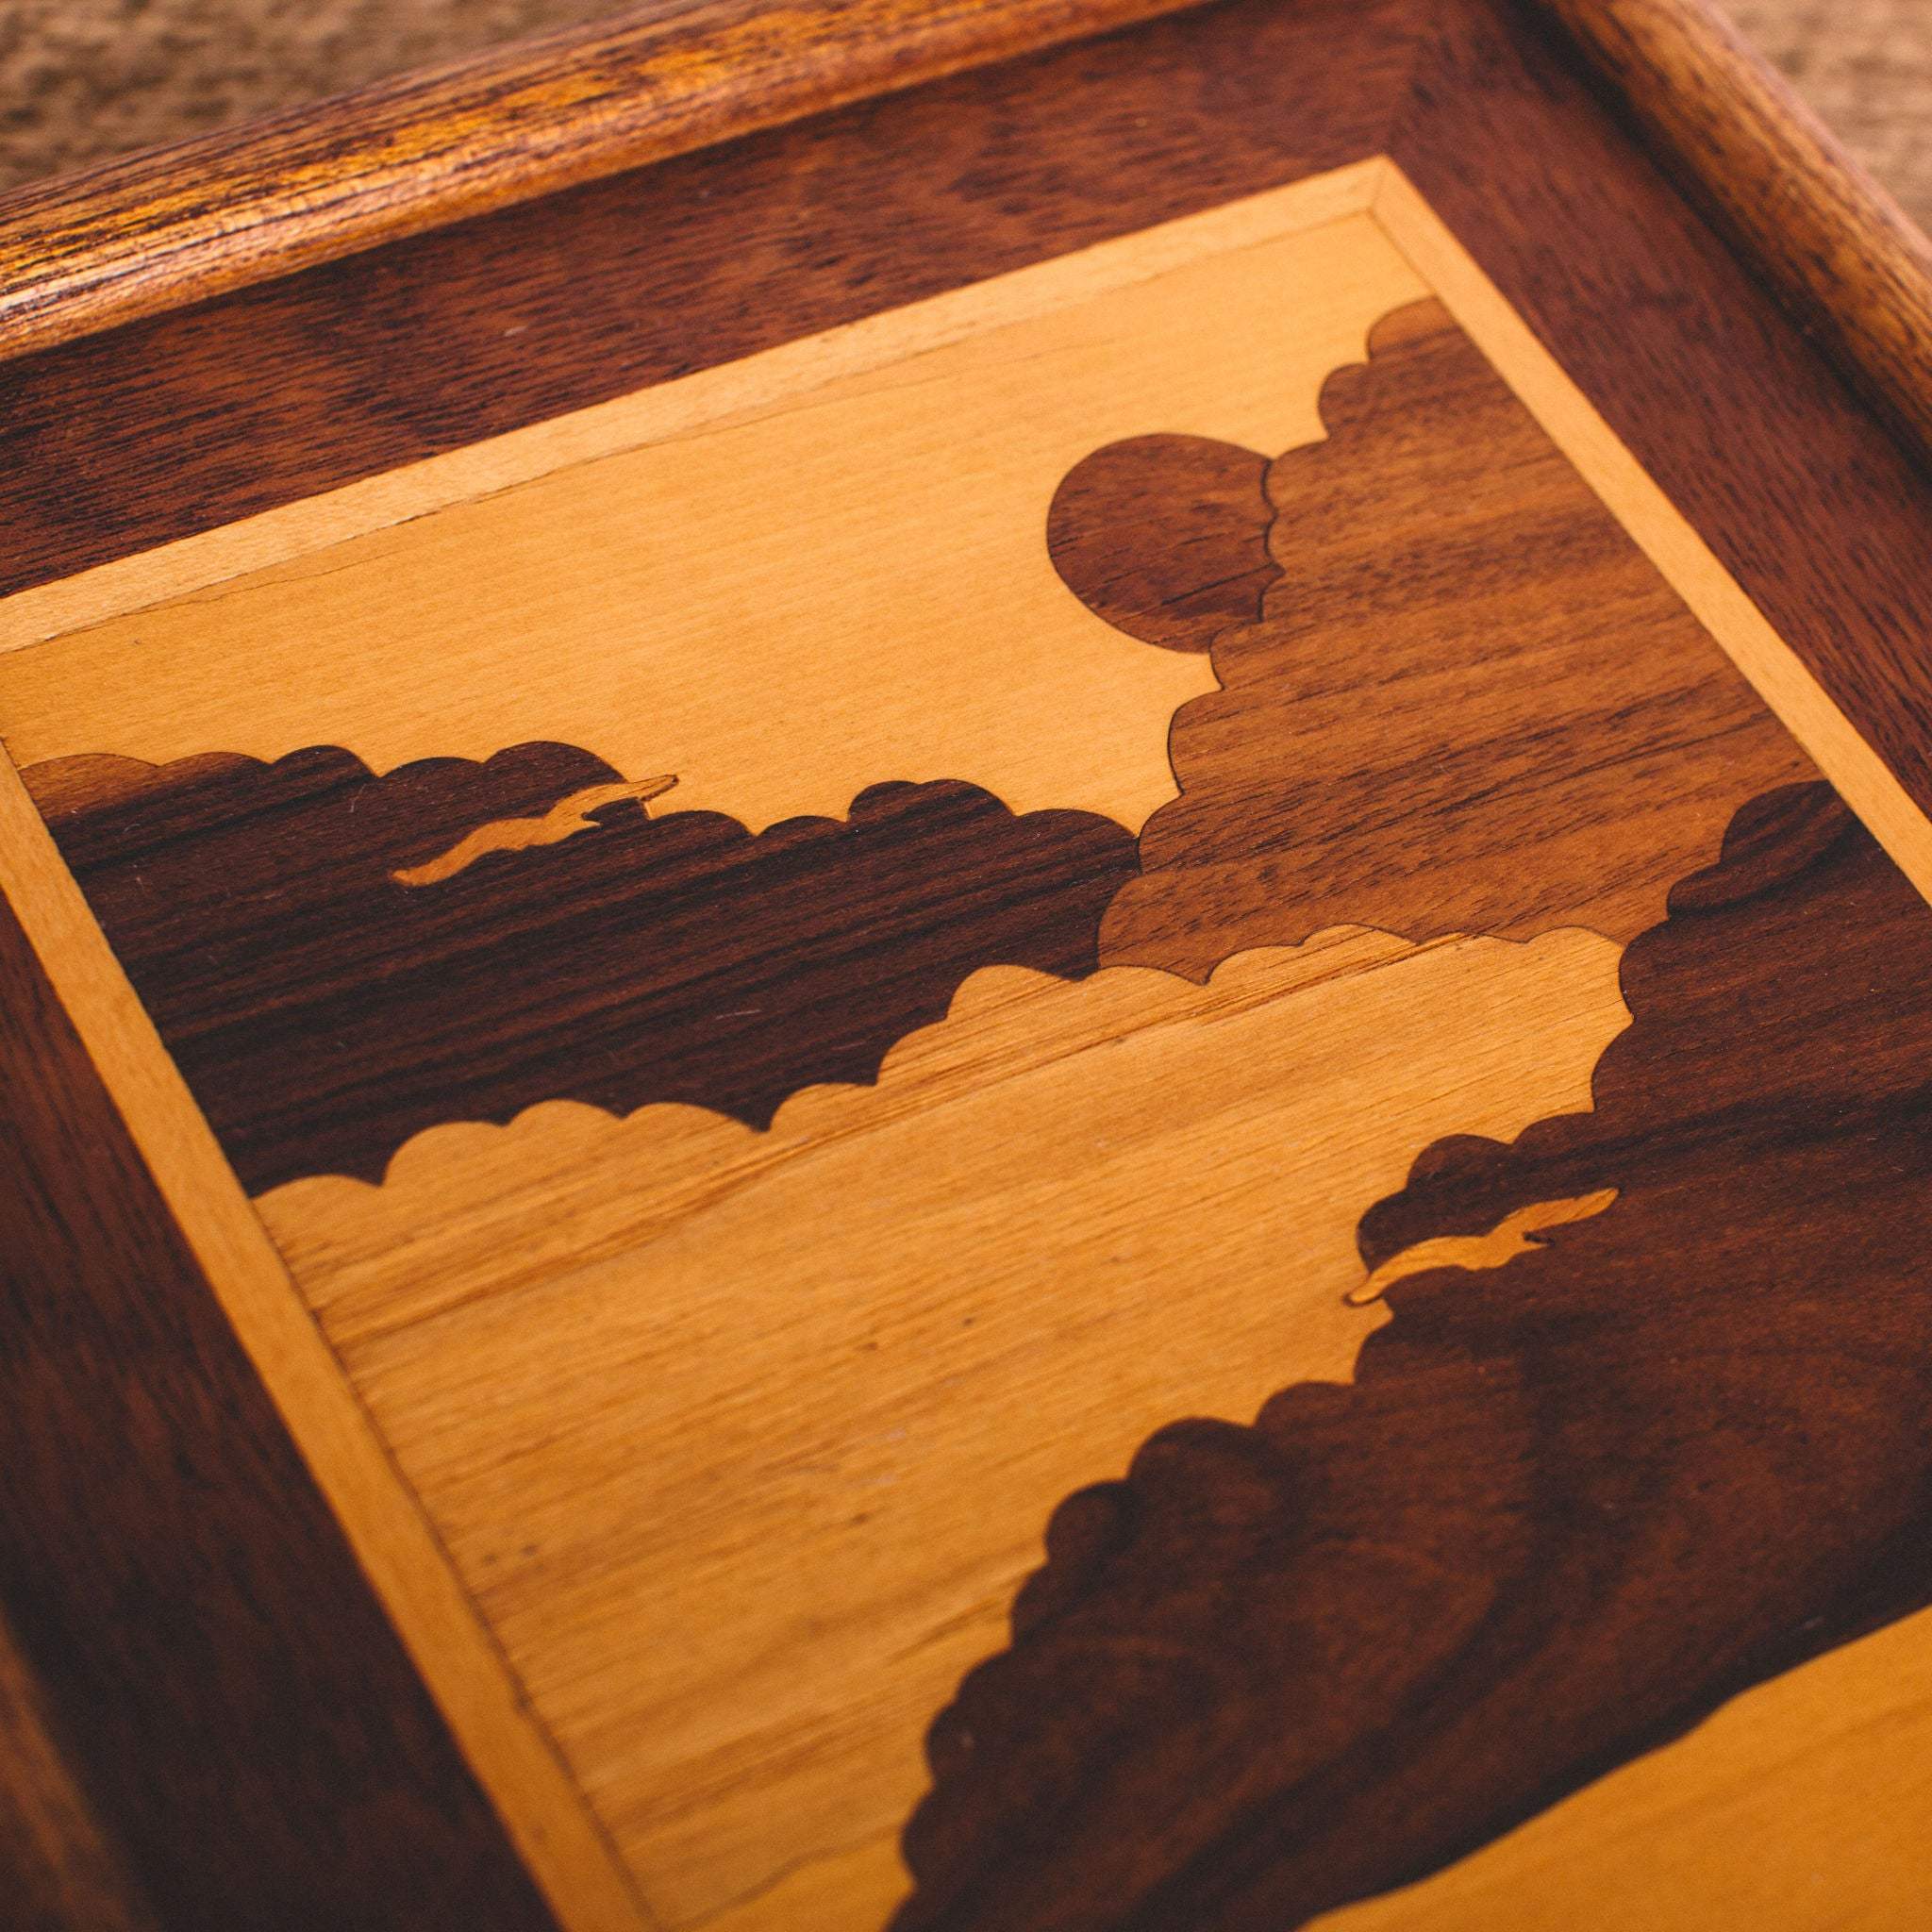 VINTAGE || CLOUDS & MOUNTAINS WOOD INLAY WALL ART